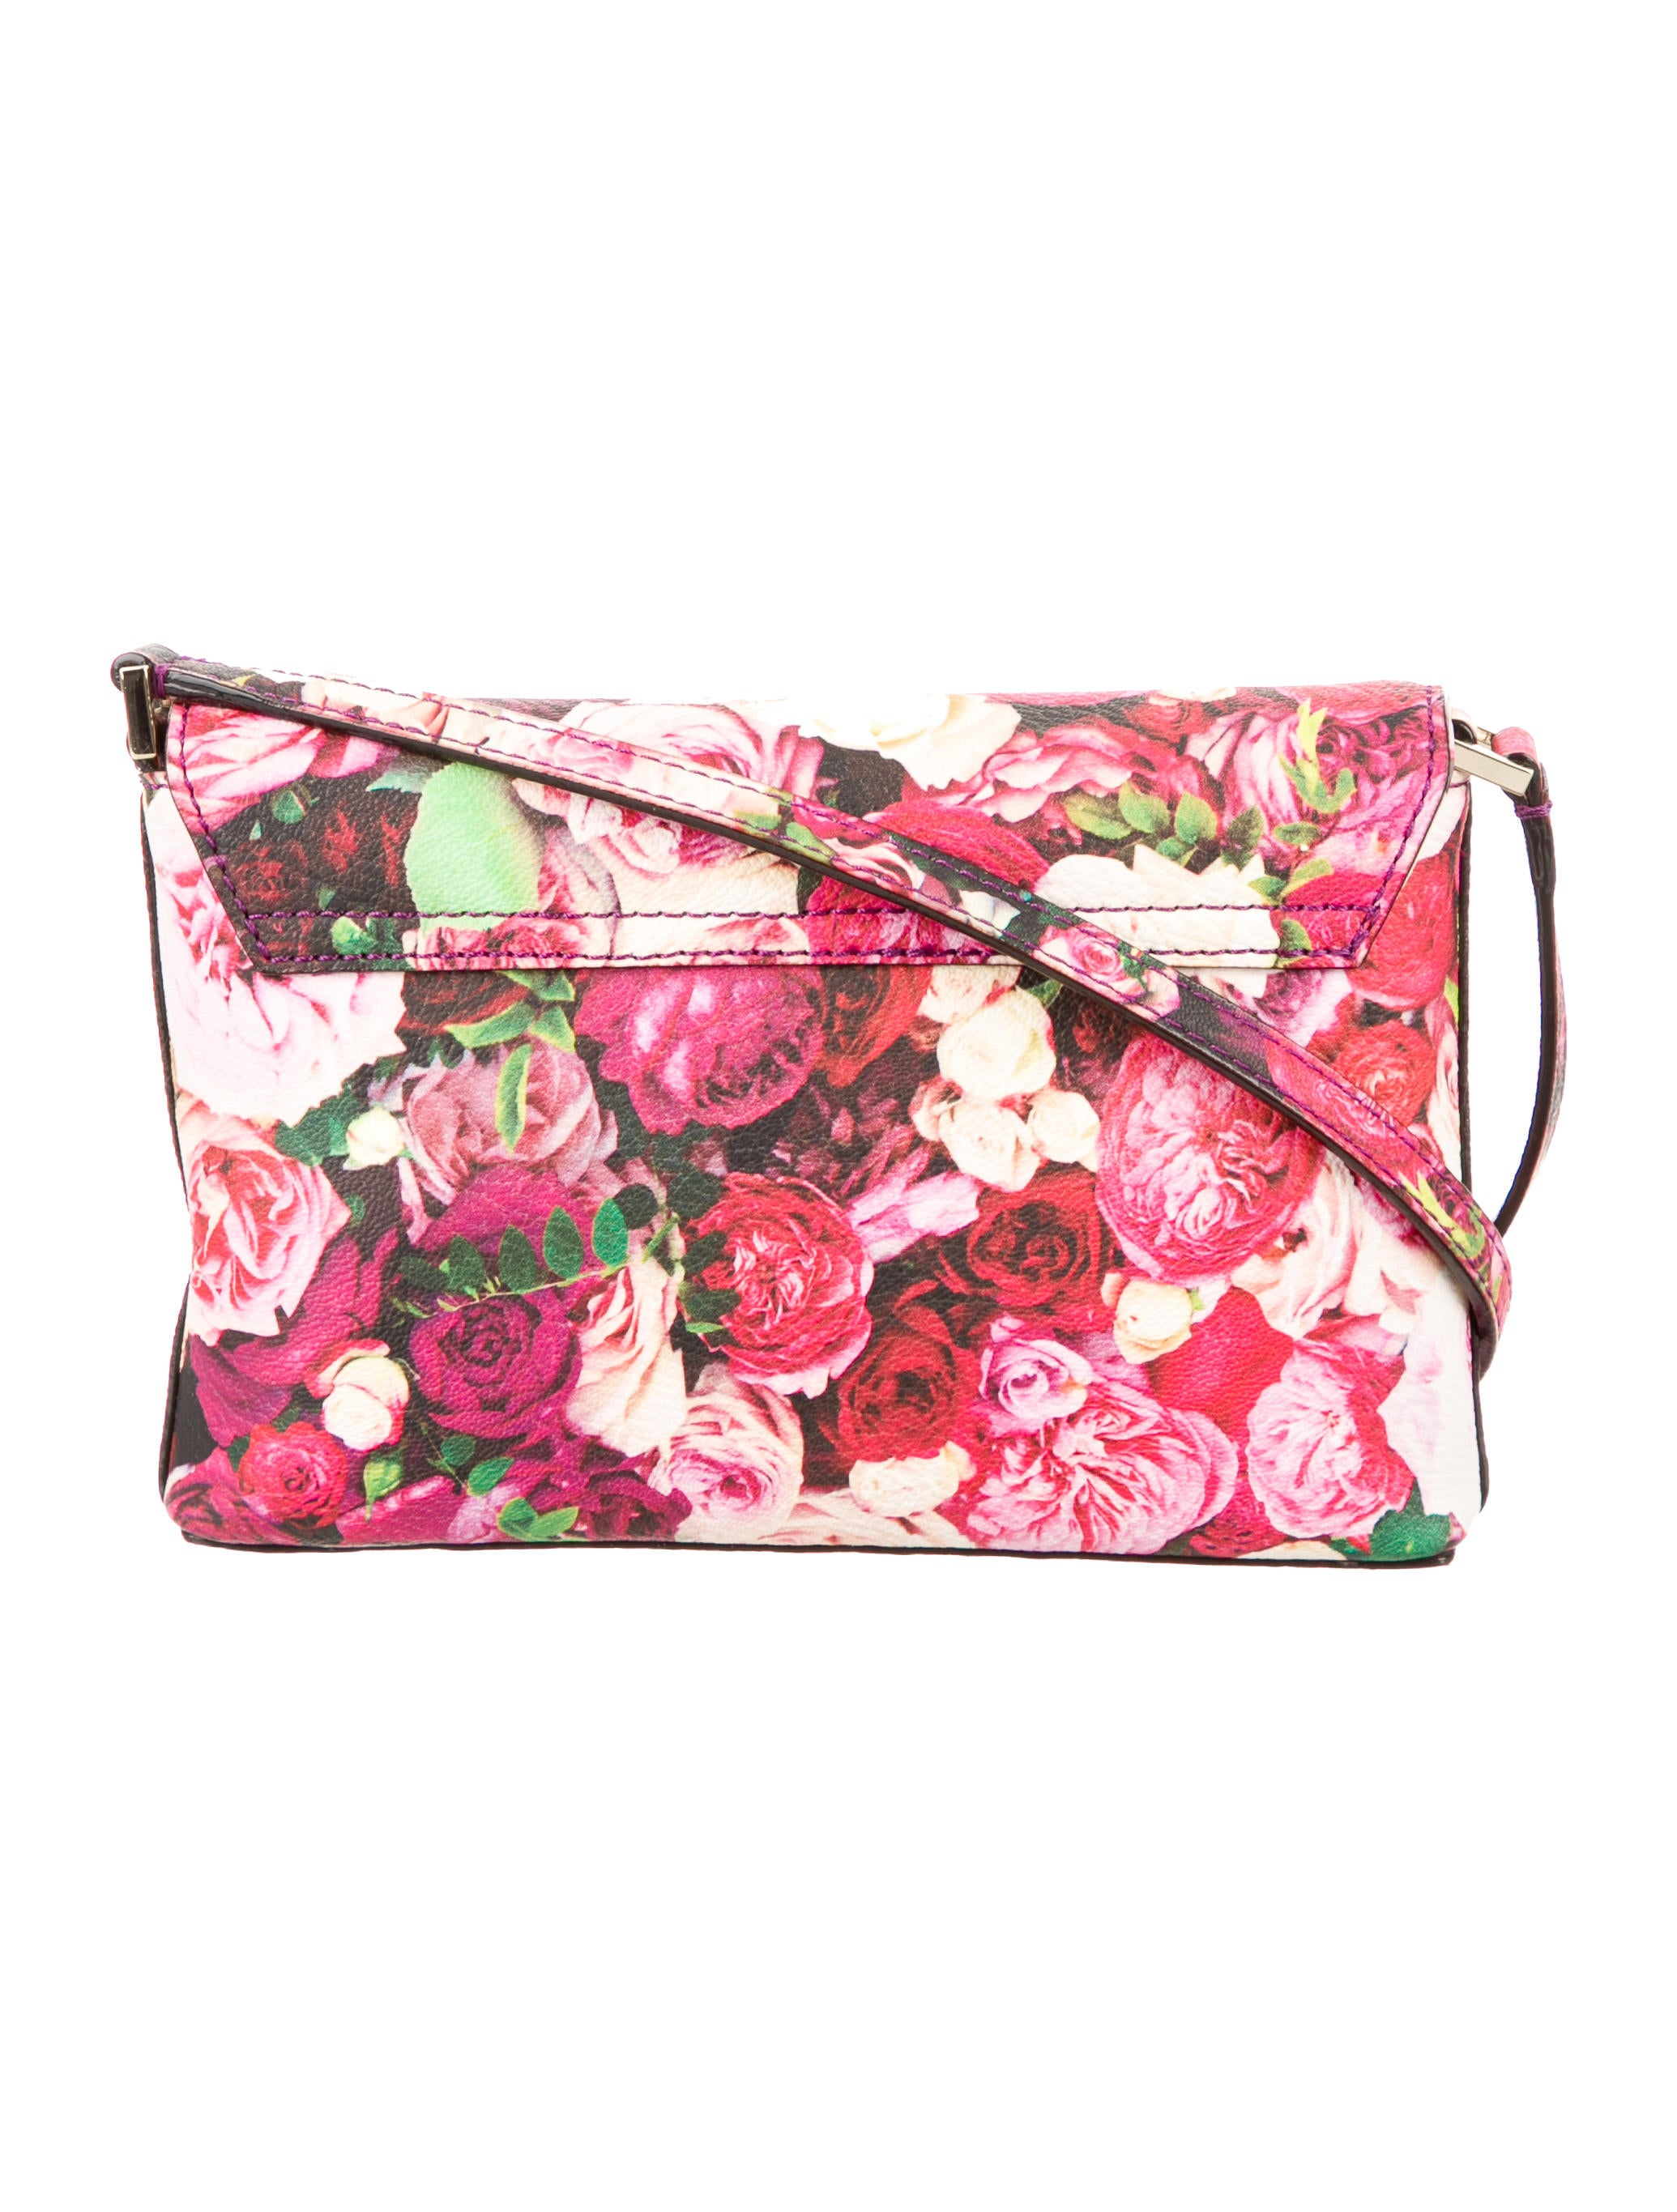 Kate Spade New York Grant Street Floral Sally Crossbody Bag - Handbags - WKA59046 | The RealReal